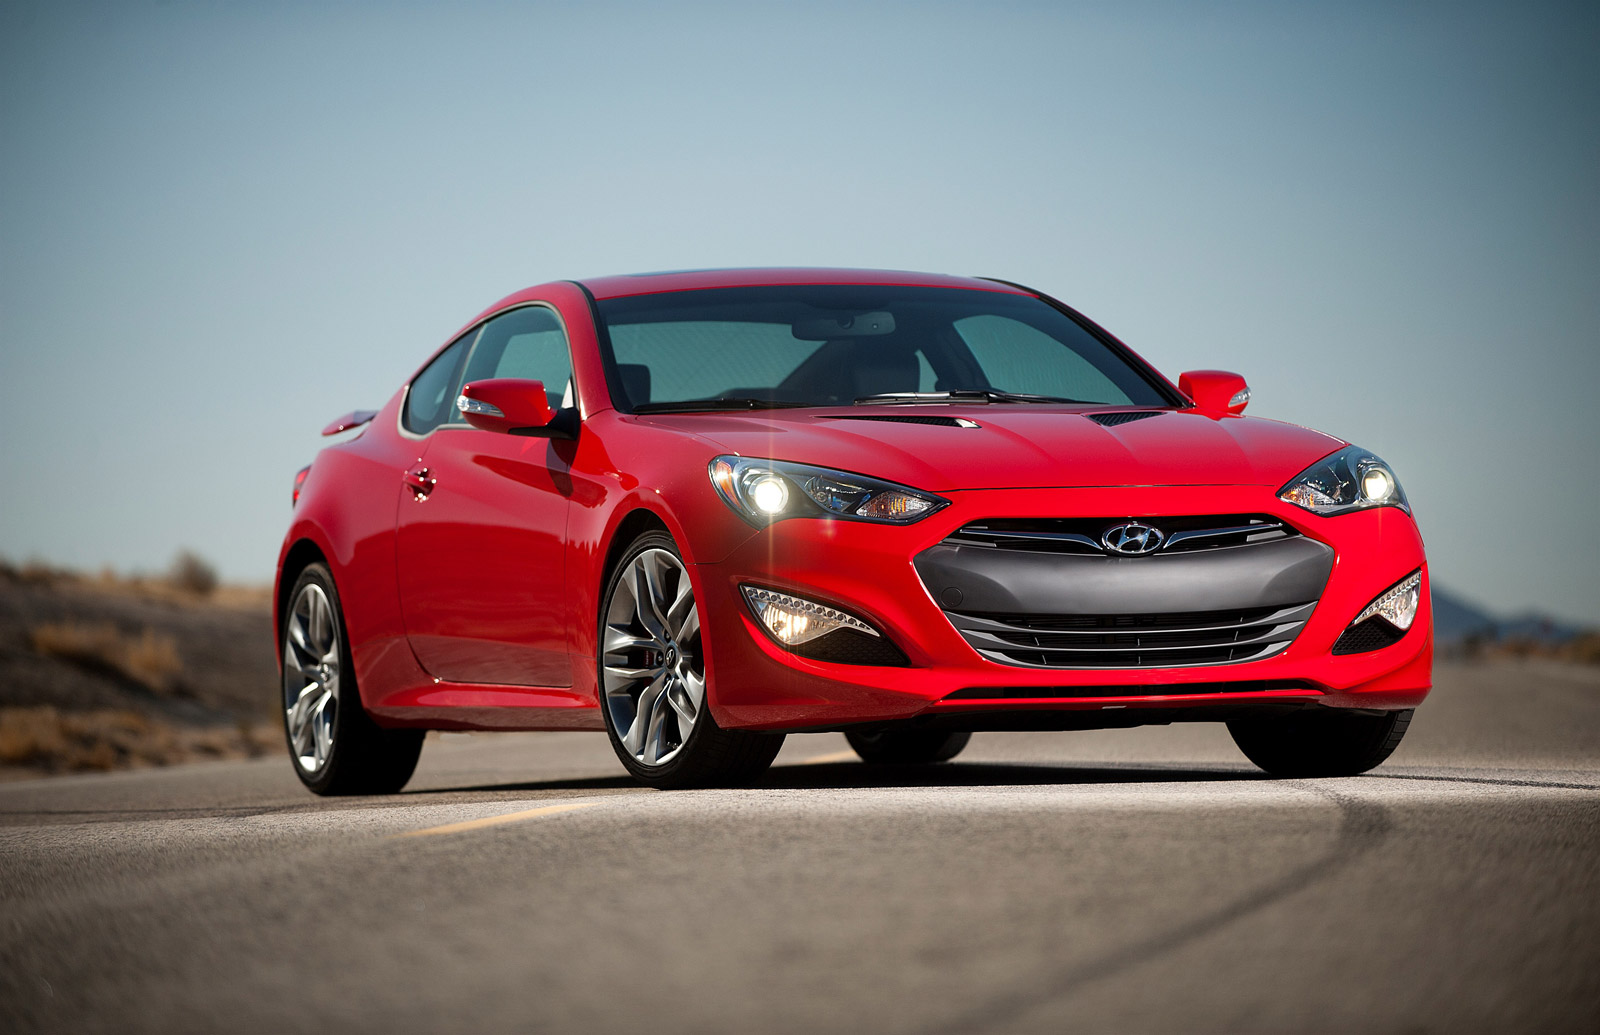 2015 hyundai genesis coupe review ratings specs prices and photos the car connection. Black Bedroom Furniture Sets. Home Design Ideas